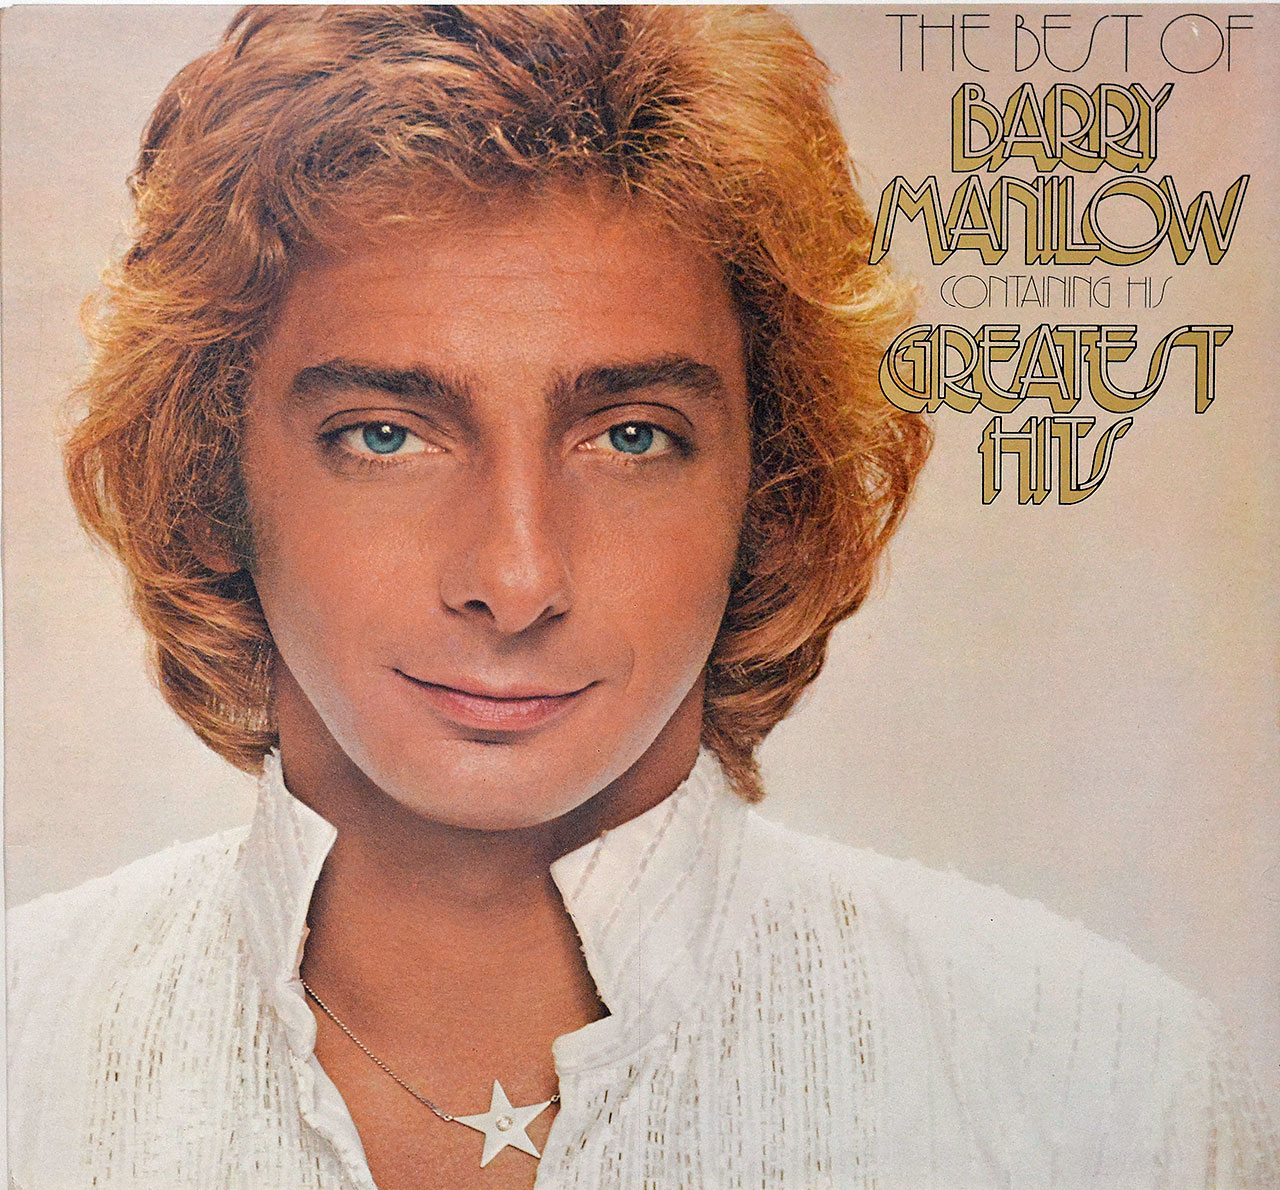 Album Front Cover Photo of BARRY MANILOW - The Best of Barry Manilow